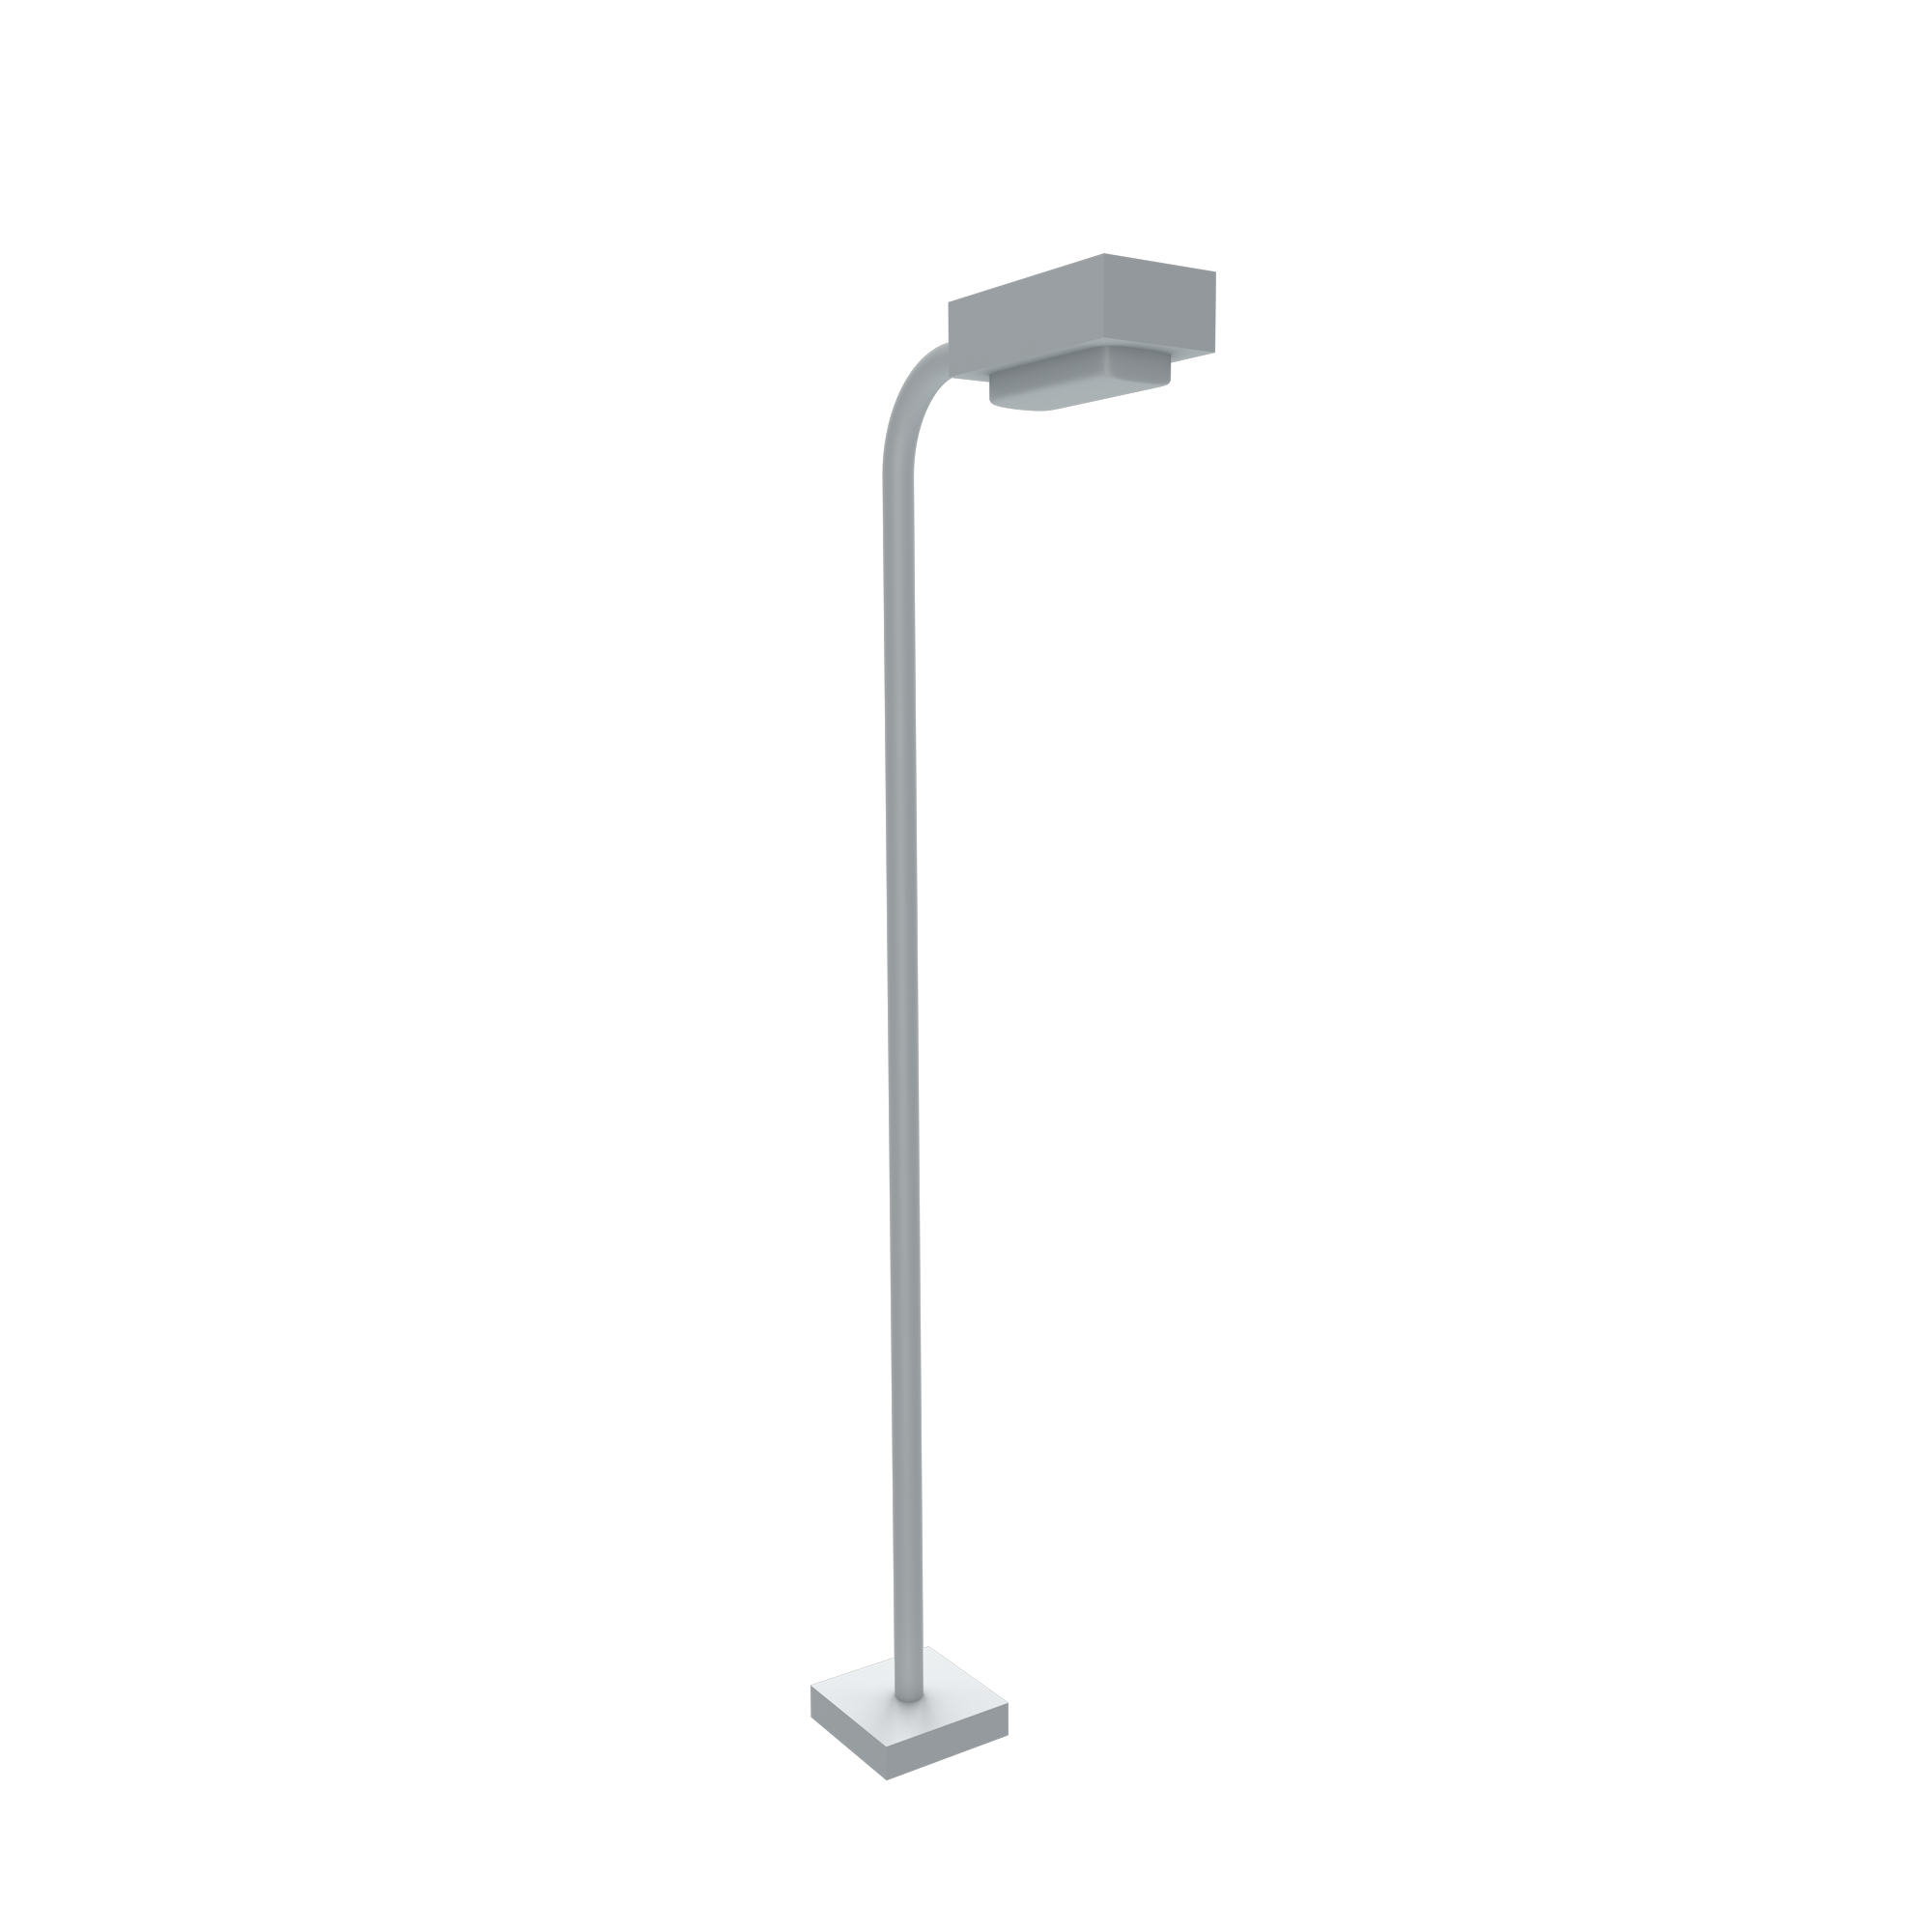 Street Light No Text0039.png